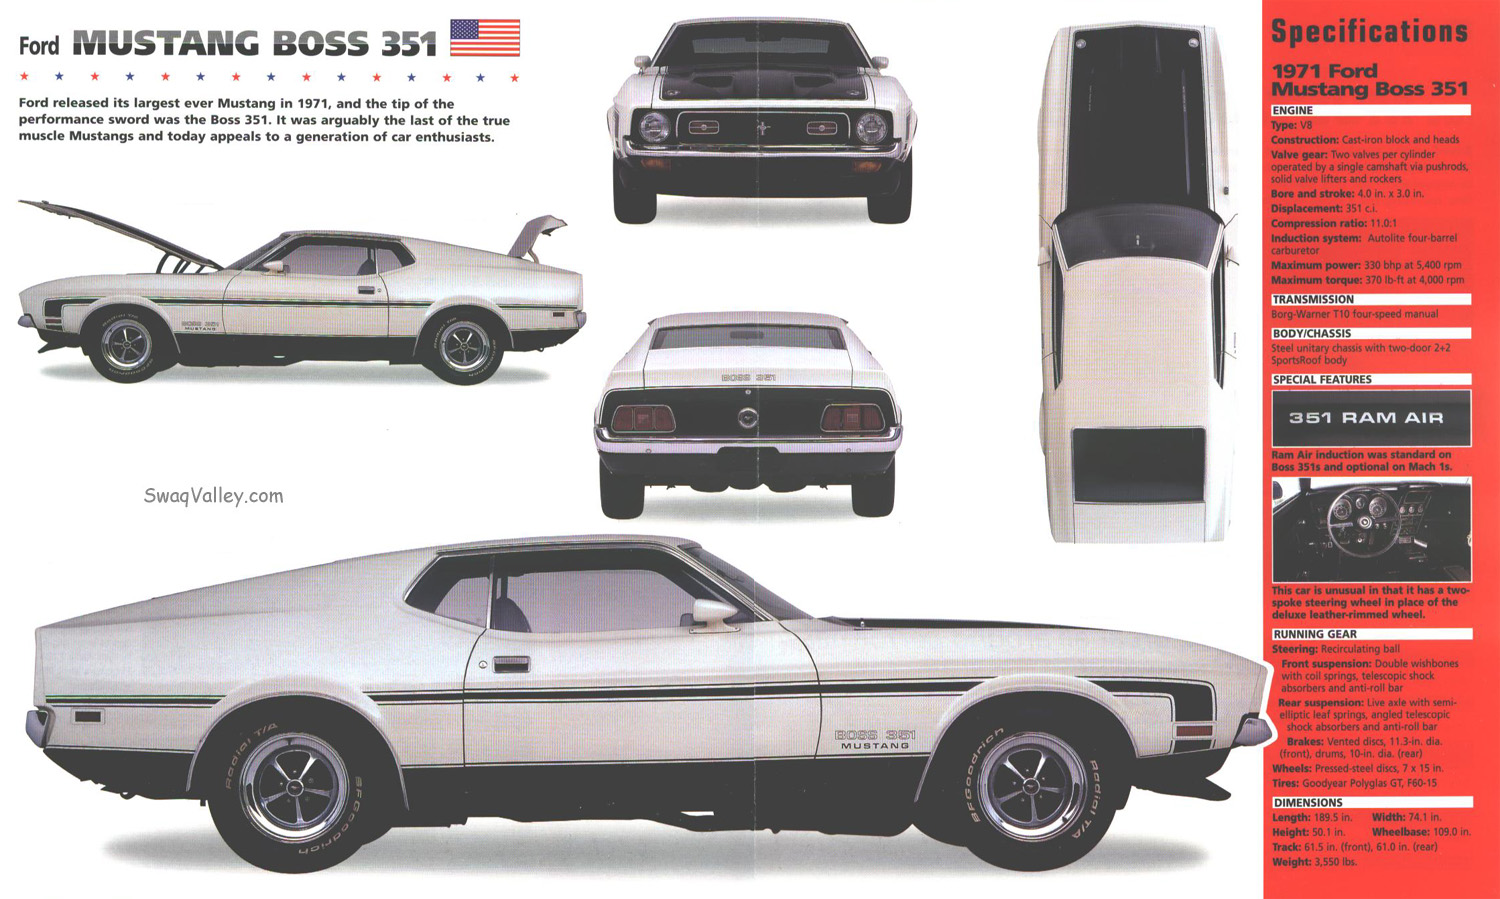 swaq valley rh swaqvalley com Blueprints for Mustang Mach 1 Mustang Car Design Blueprint